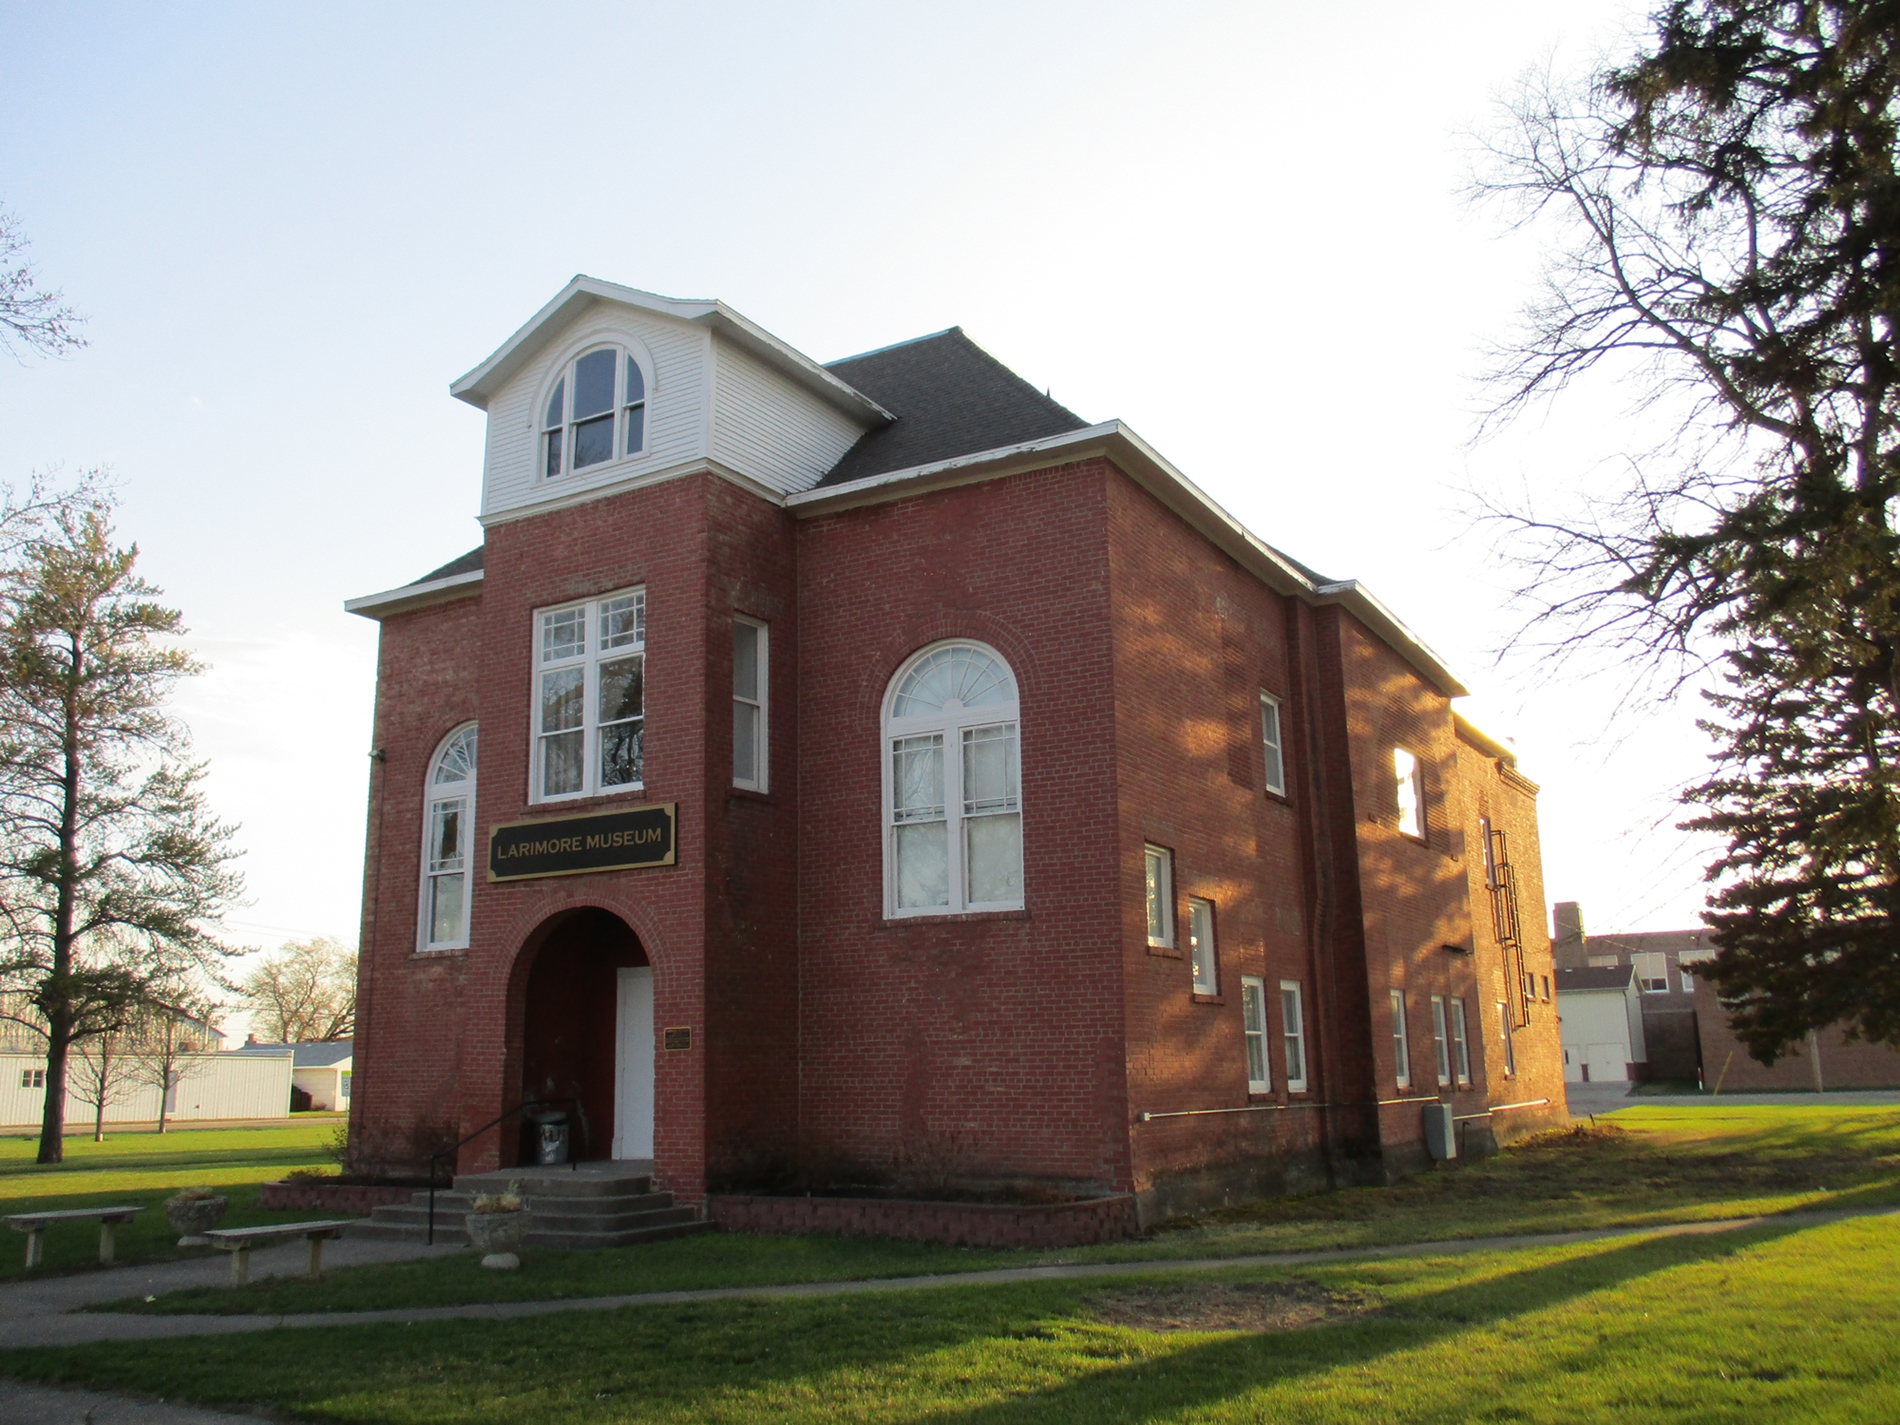 Old Larimore City Hall in the evening. This image shows the east (front) and north sides of the building. Evidence of the removed large Colonial Style fanlight window can be seen on the second floor of the north side.